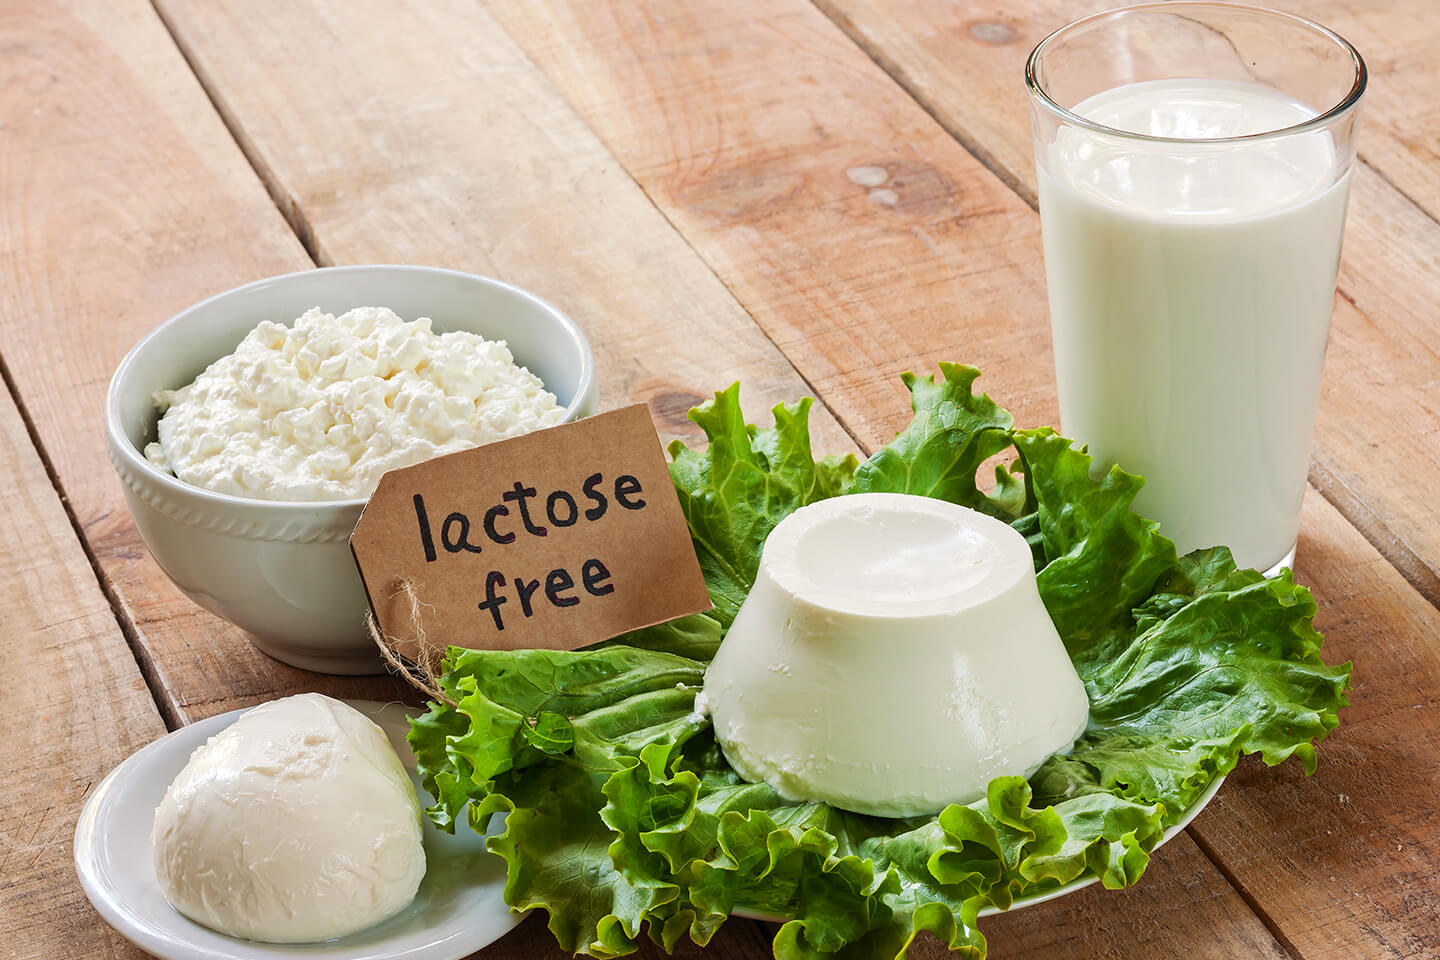 There are several reasons that someone might want to avoid dairy products. Having lactose-free options can make your restaurant more inclusive.